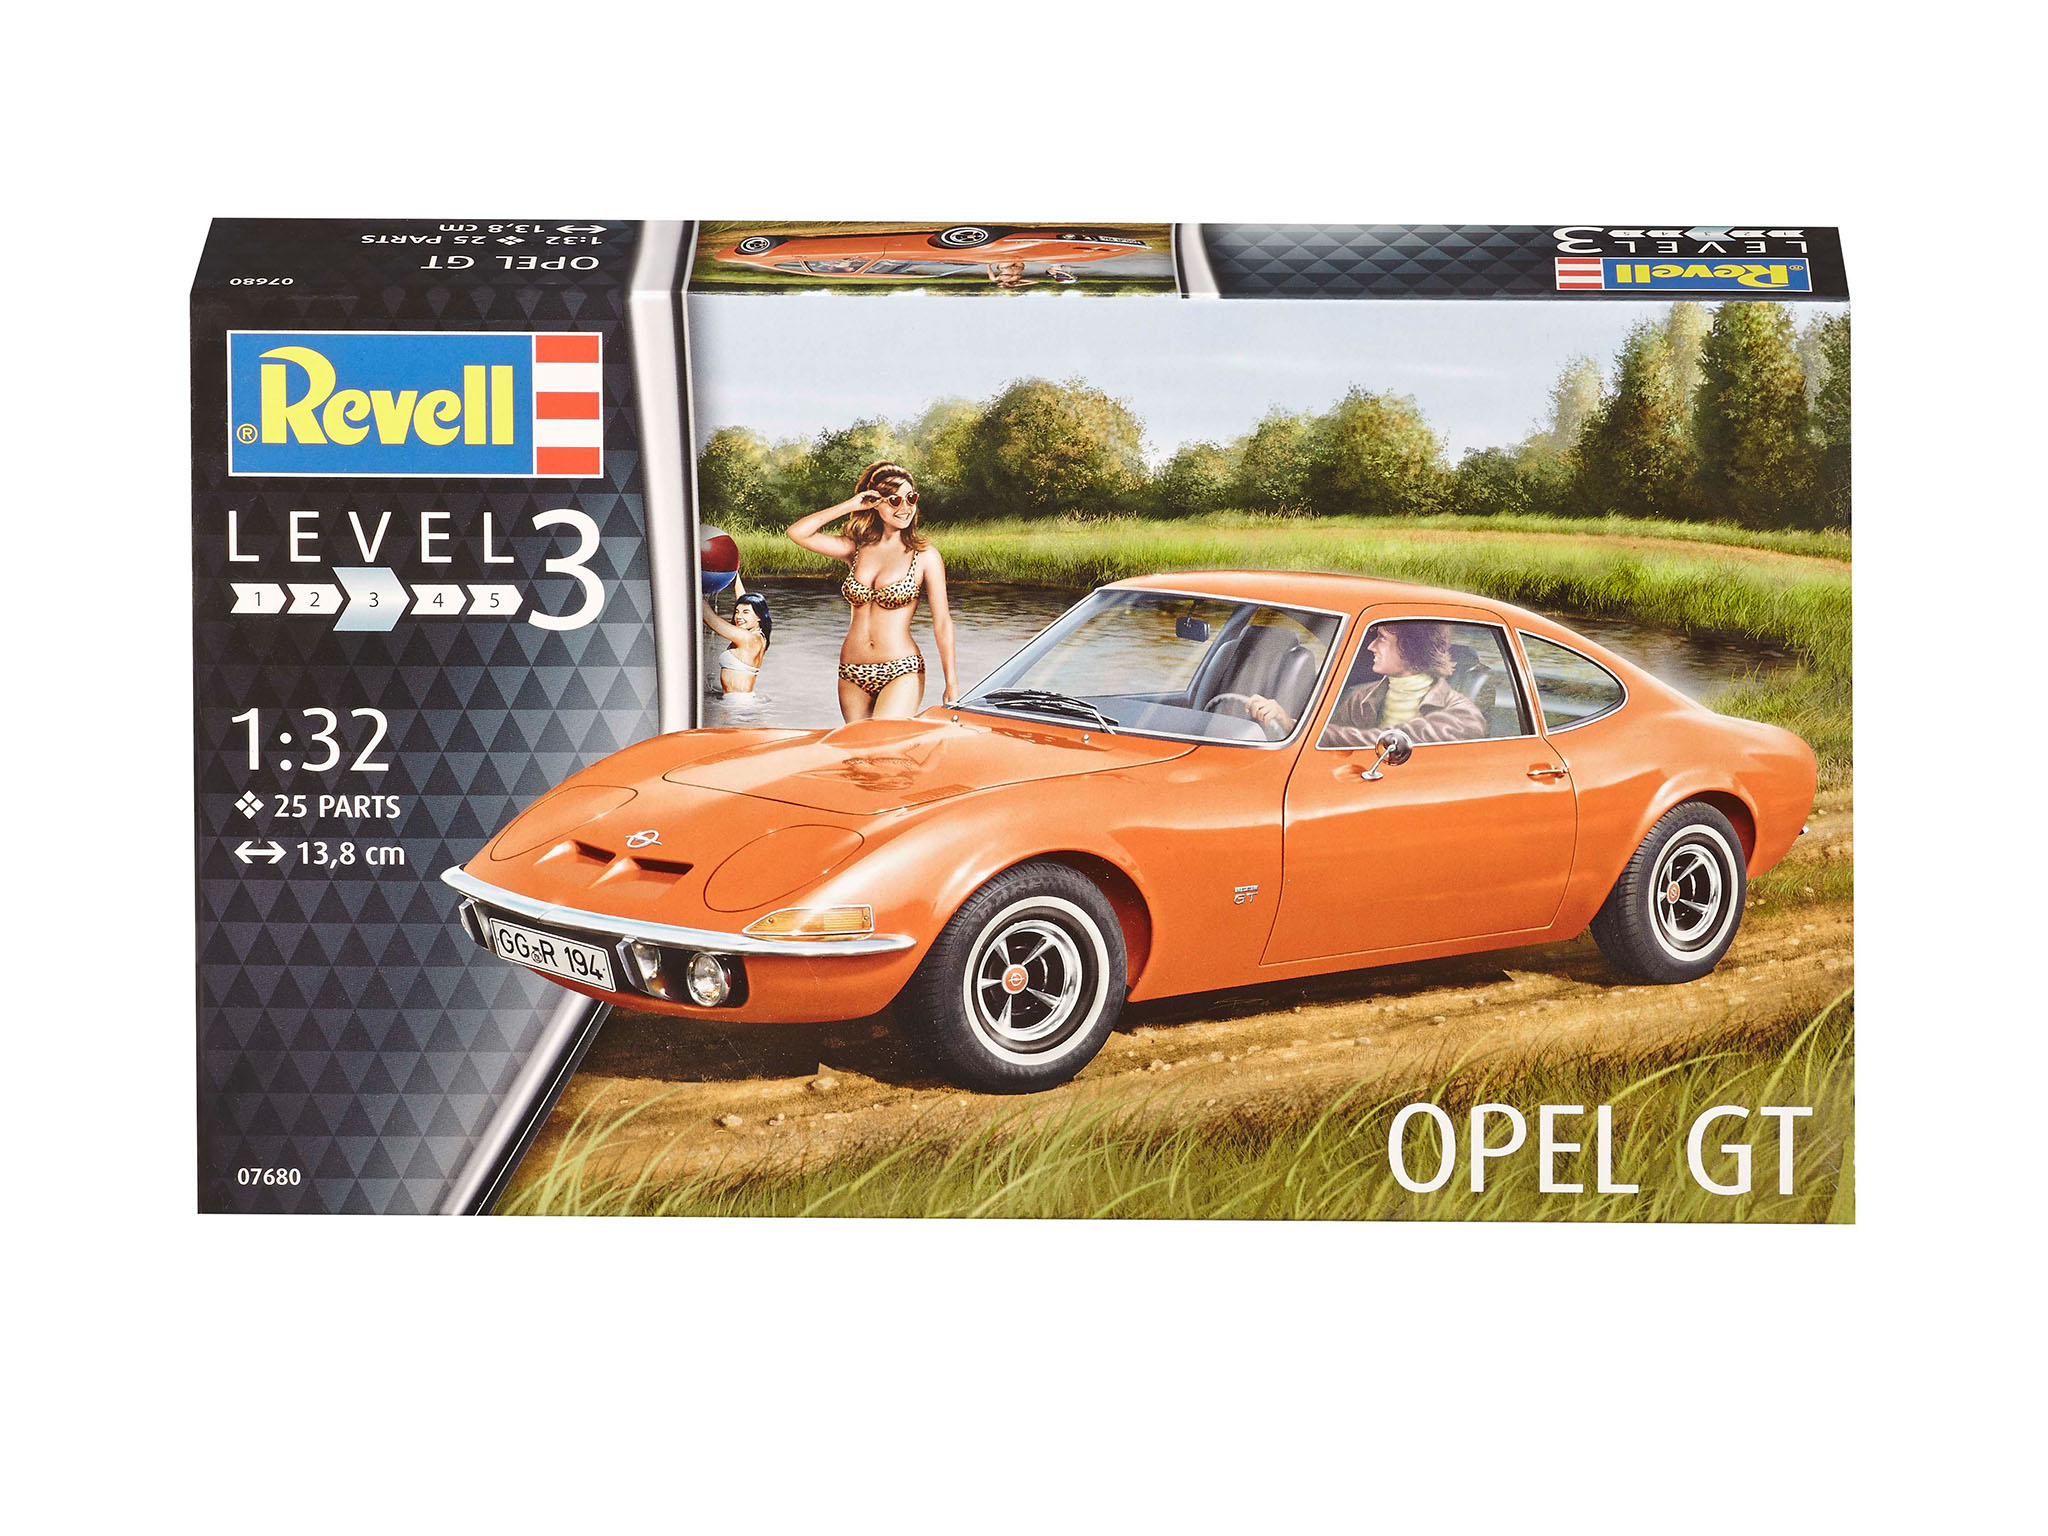 Electric Fuel Pump Wiring Opel Gt Electrical Diagrams 1972 Diagram Revell 1 32 Sussex Model Centre Smc Installation